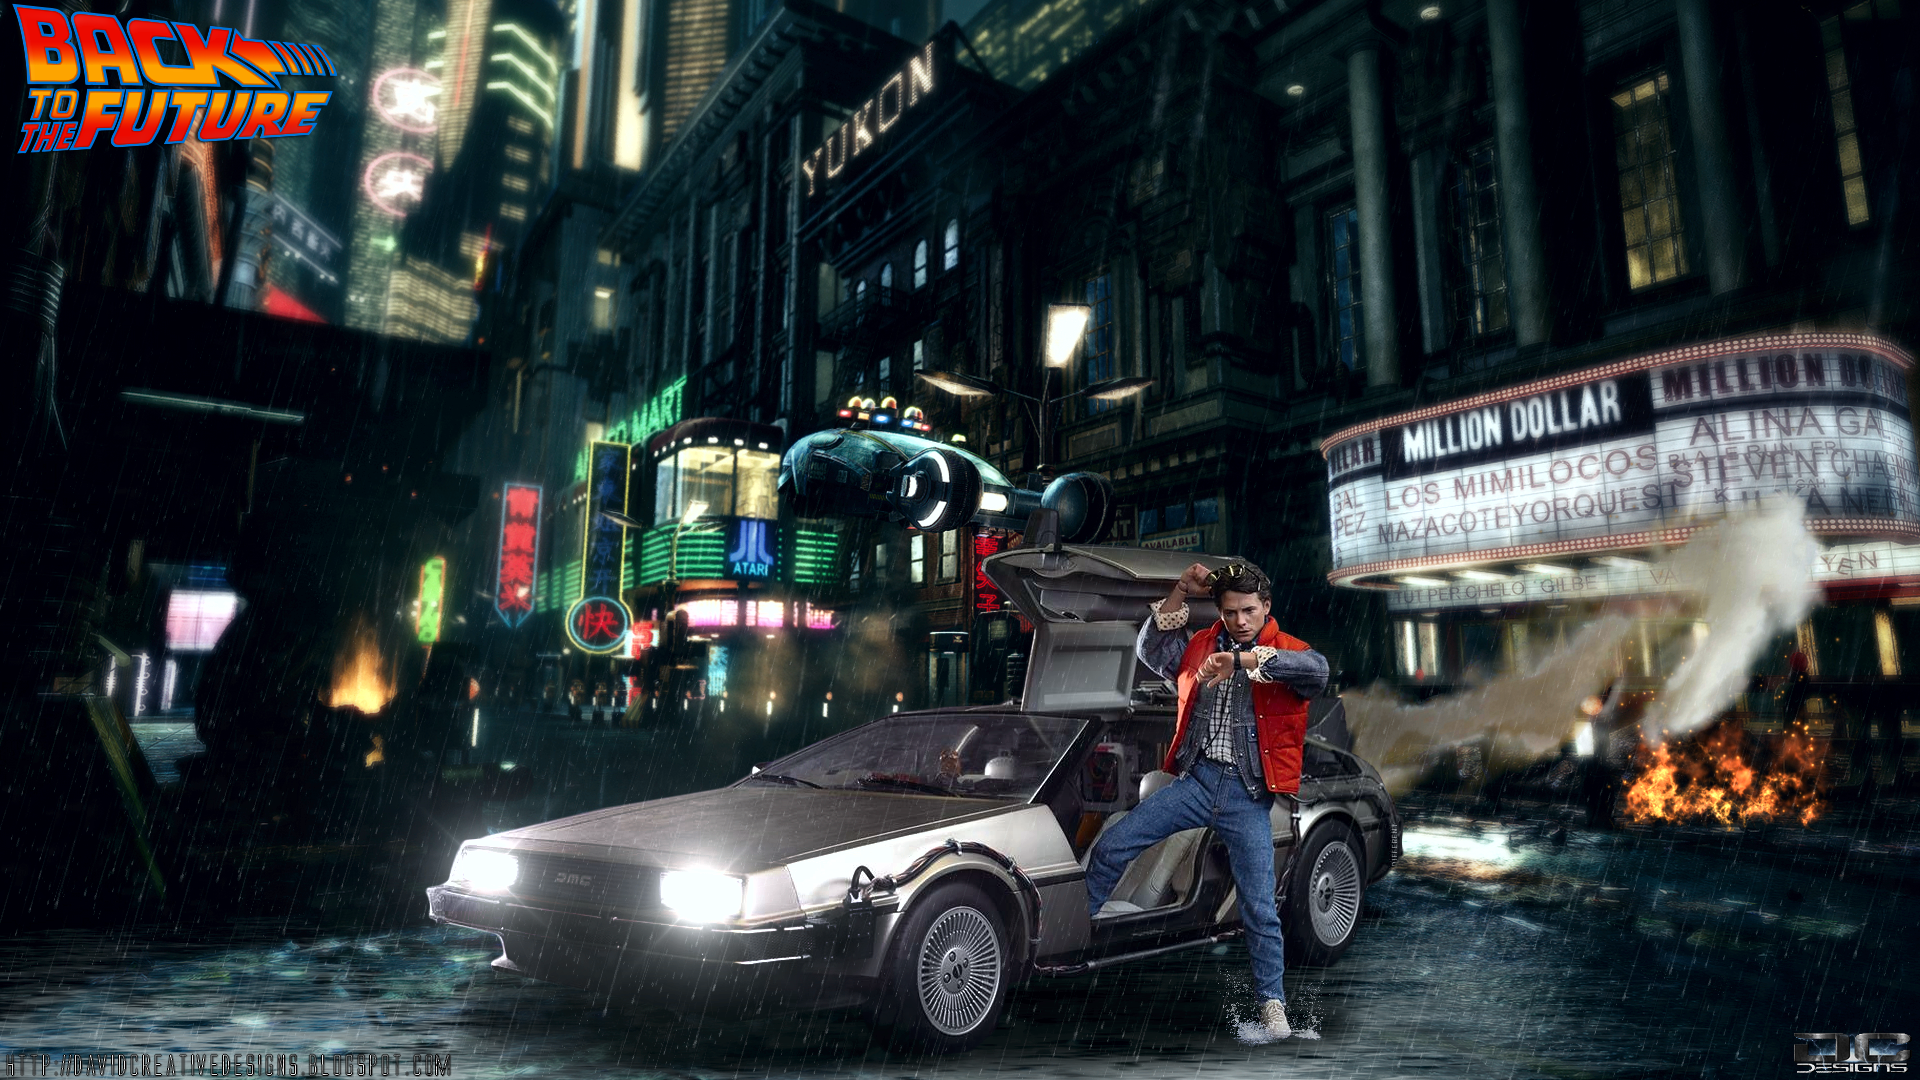 Free Download Hot Toys Back To The Future Hd Wallpaper Dc Designs